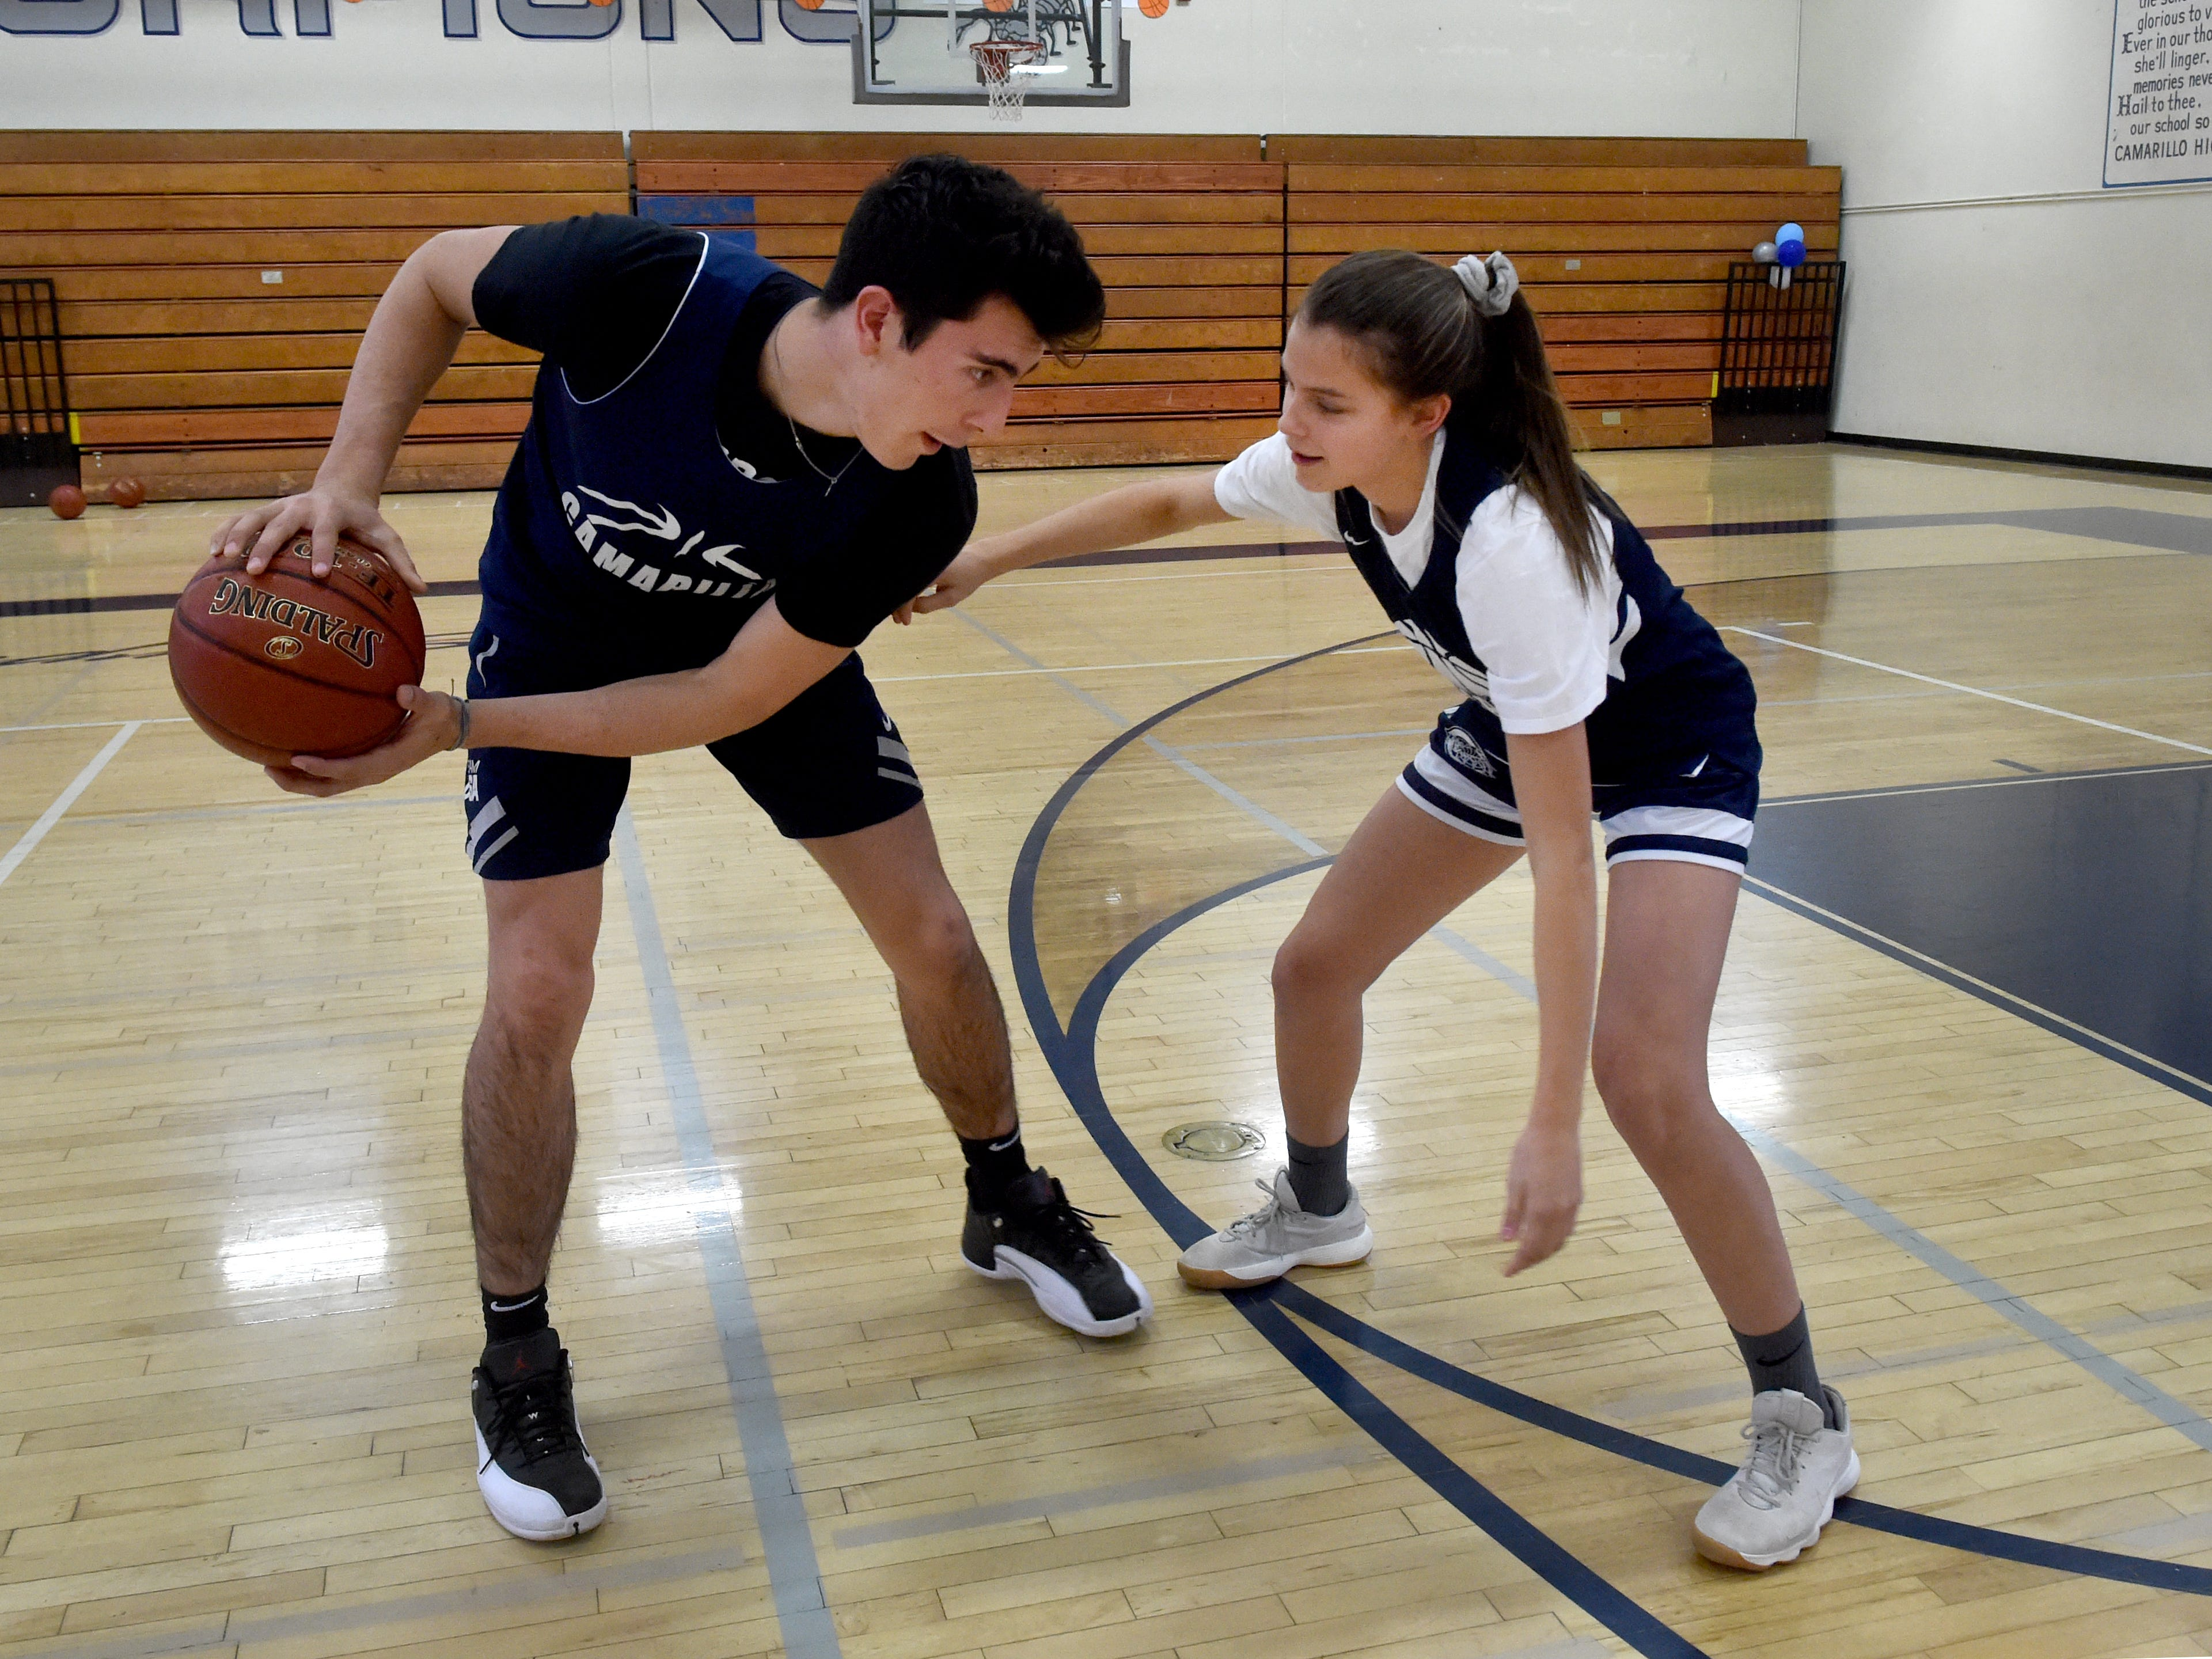 Jaime Jaquez Jr. goes one one with sister Gabriela, a freshman, at Camarillo High. Jaime, the star player for the boys basketball team, has been one of the top players in the state and is bound for UCLA, while Gabriella has made an instant impact on the varsity girls basketball team. Both Camarillo teams had dominant regular seasons.